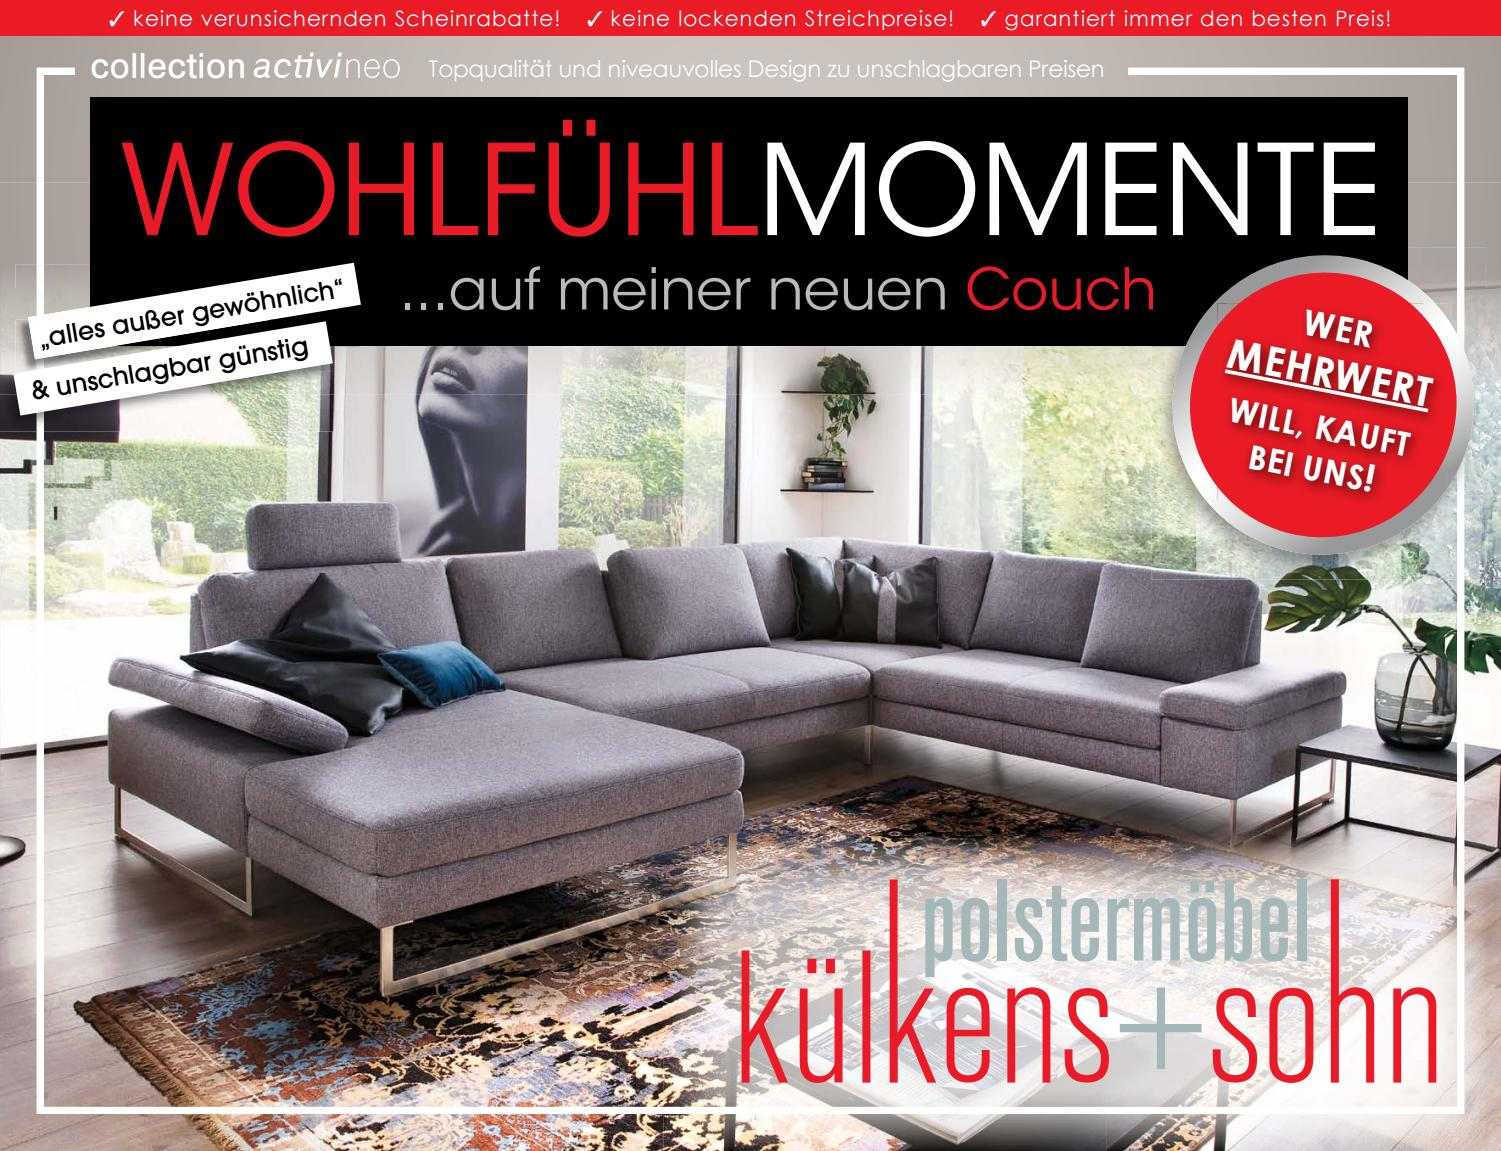 kuelkens sohn activineo prospekt by perspektive werbeagentur issuu. Black Bedroom Furniture Sets. Home Design Ideas